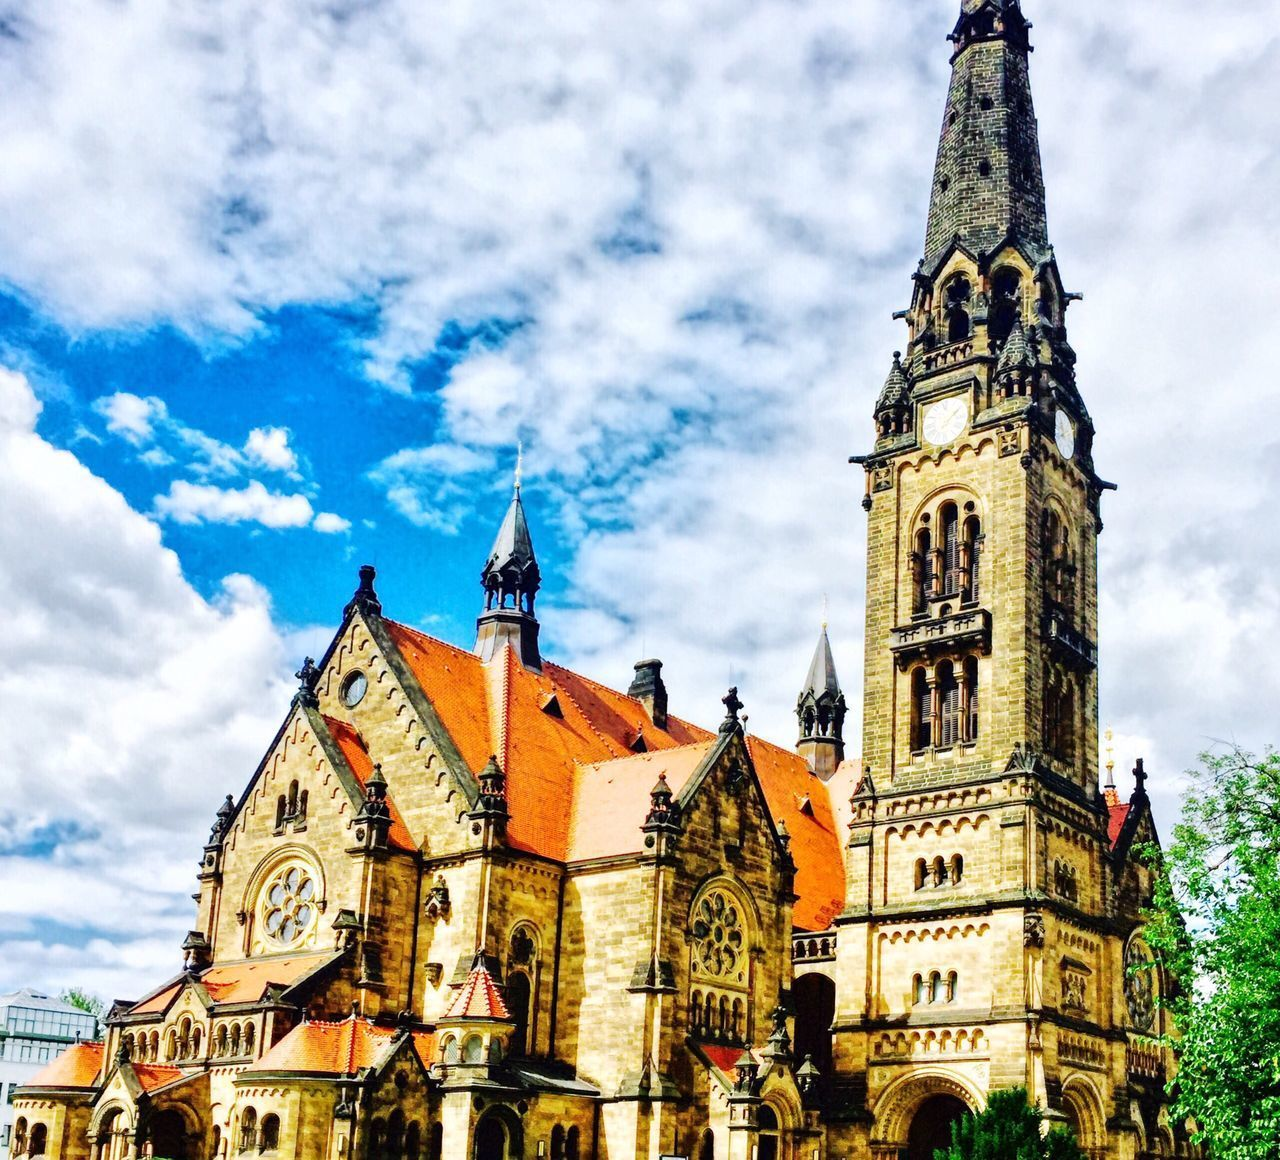 Religion Place Of Worship Architecture Spirituality Cloud - Sky Built Structure Building Exterior Sky Travel Destinations Low Angle View History Day Outdoors Clock Tower No People City Clock Dresden